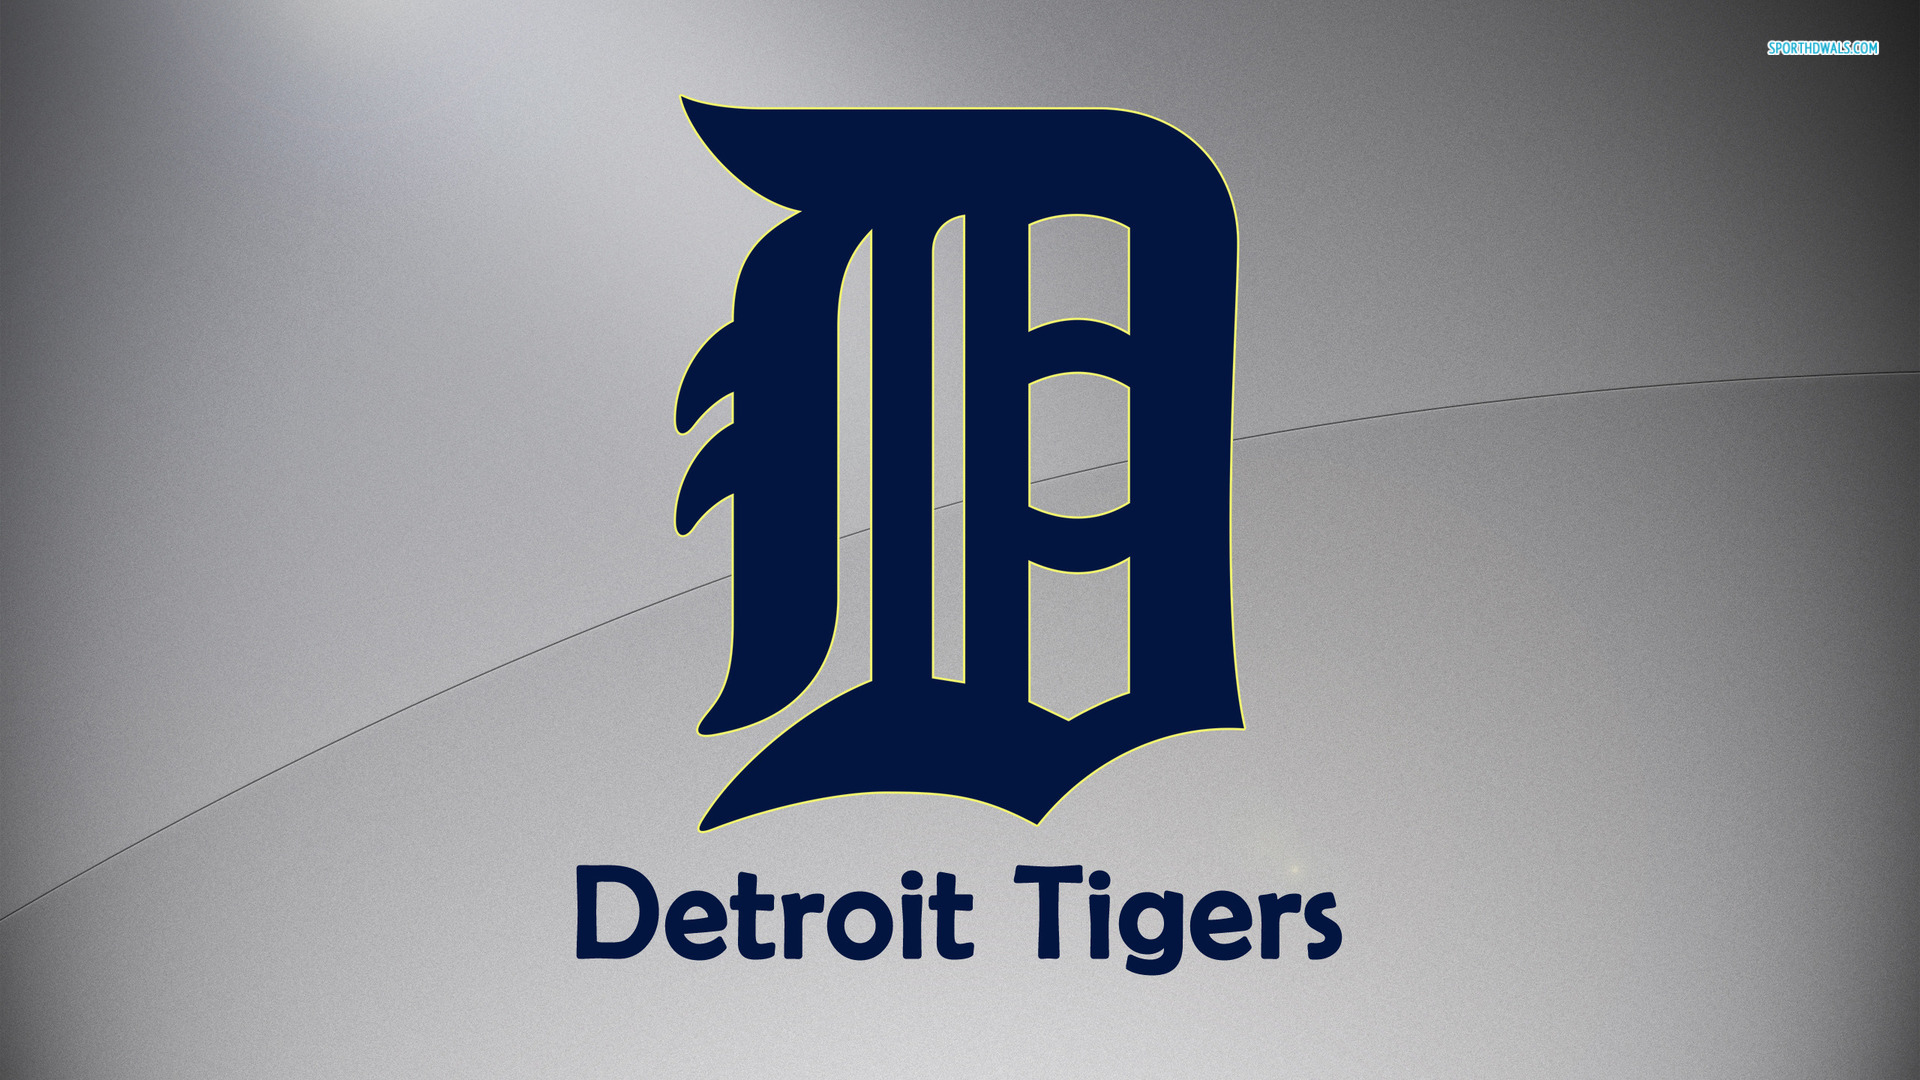 Detroit Tigers wallpaper 1920x1080